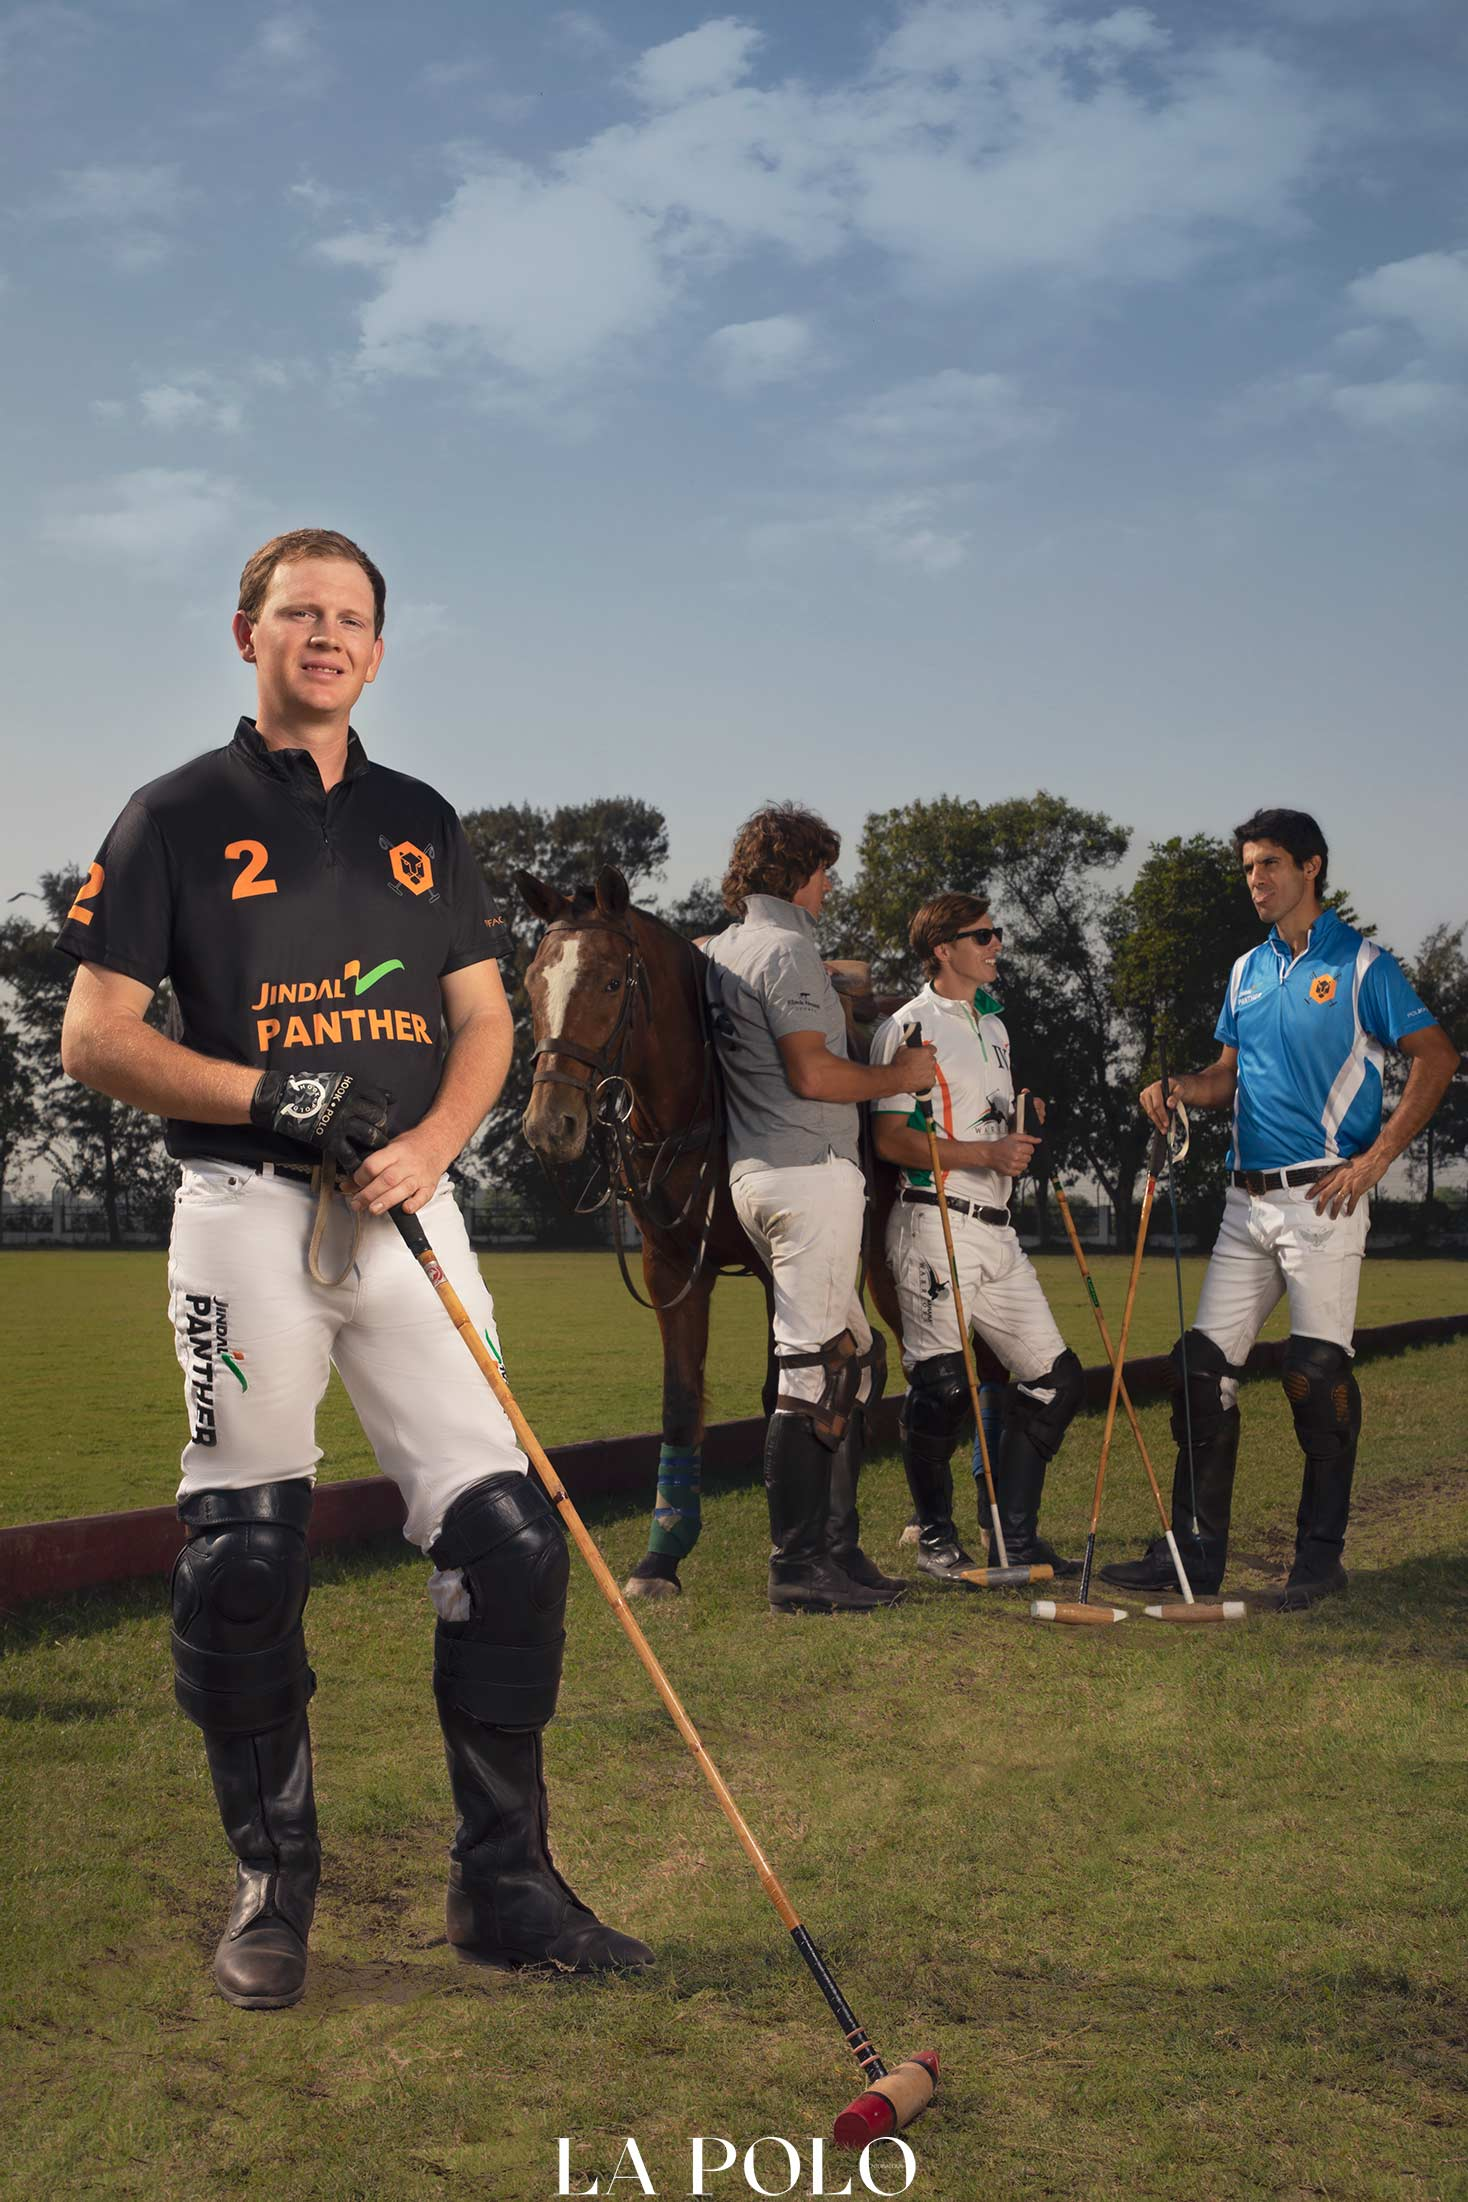 Phil-seller-polo-player-lapolo